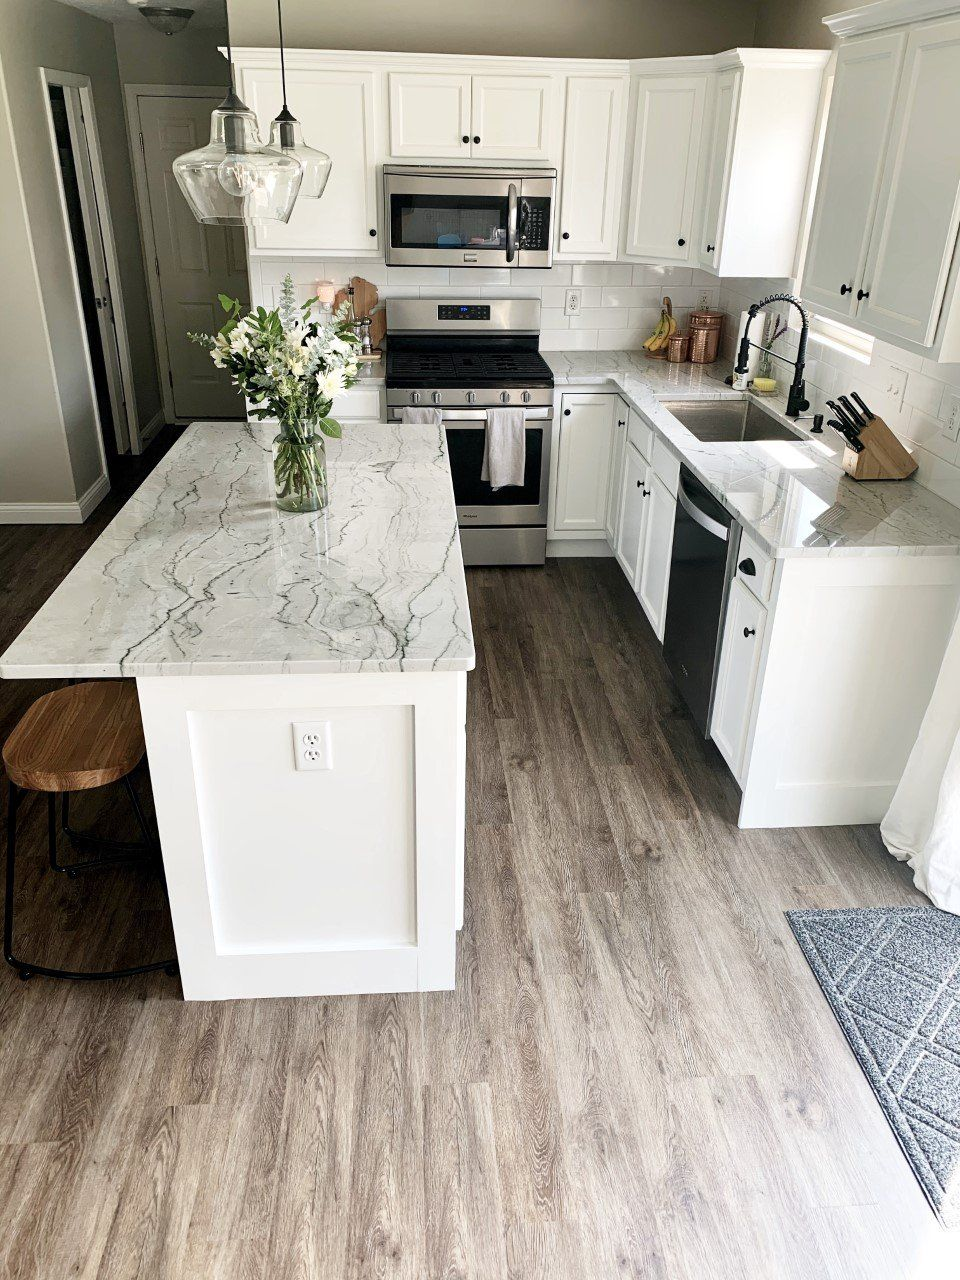 Top Kitchen Design Trends For 2021 The Latest Update Top Kitchen Designs Kitchen Design Trends Latest Kitchen Designs